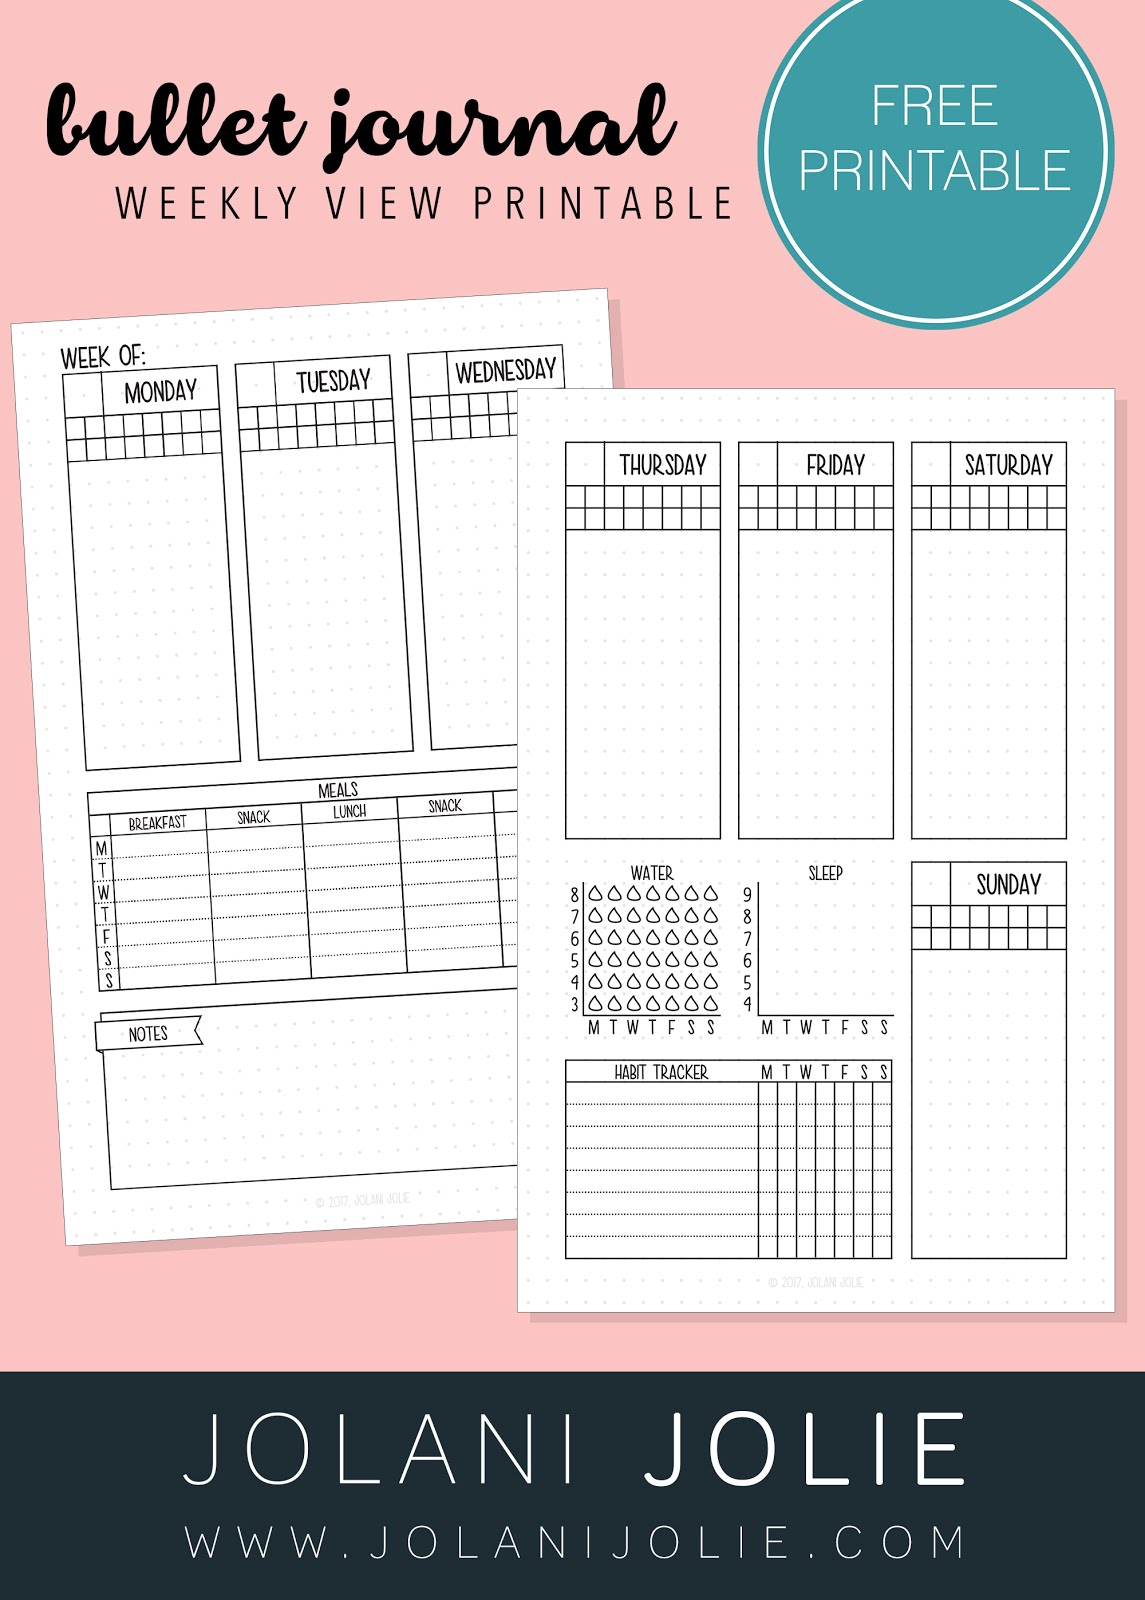 Free Printable Weekly Bullet Journal Overview With Sleep Water Amp Habit Tracker